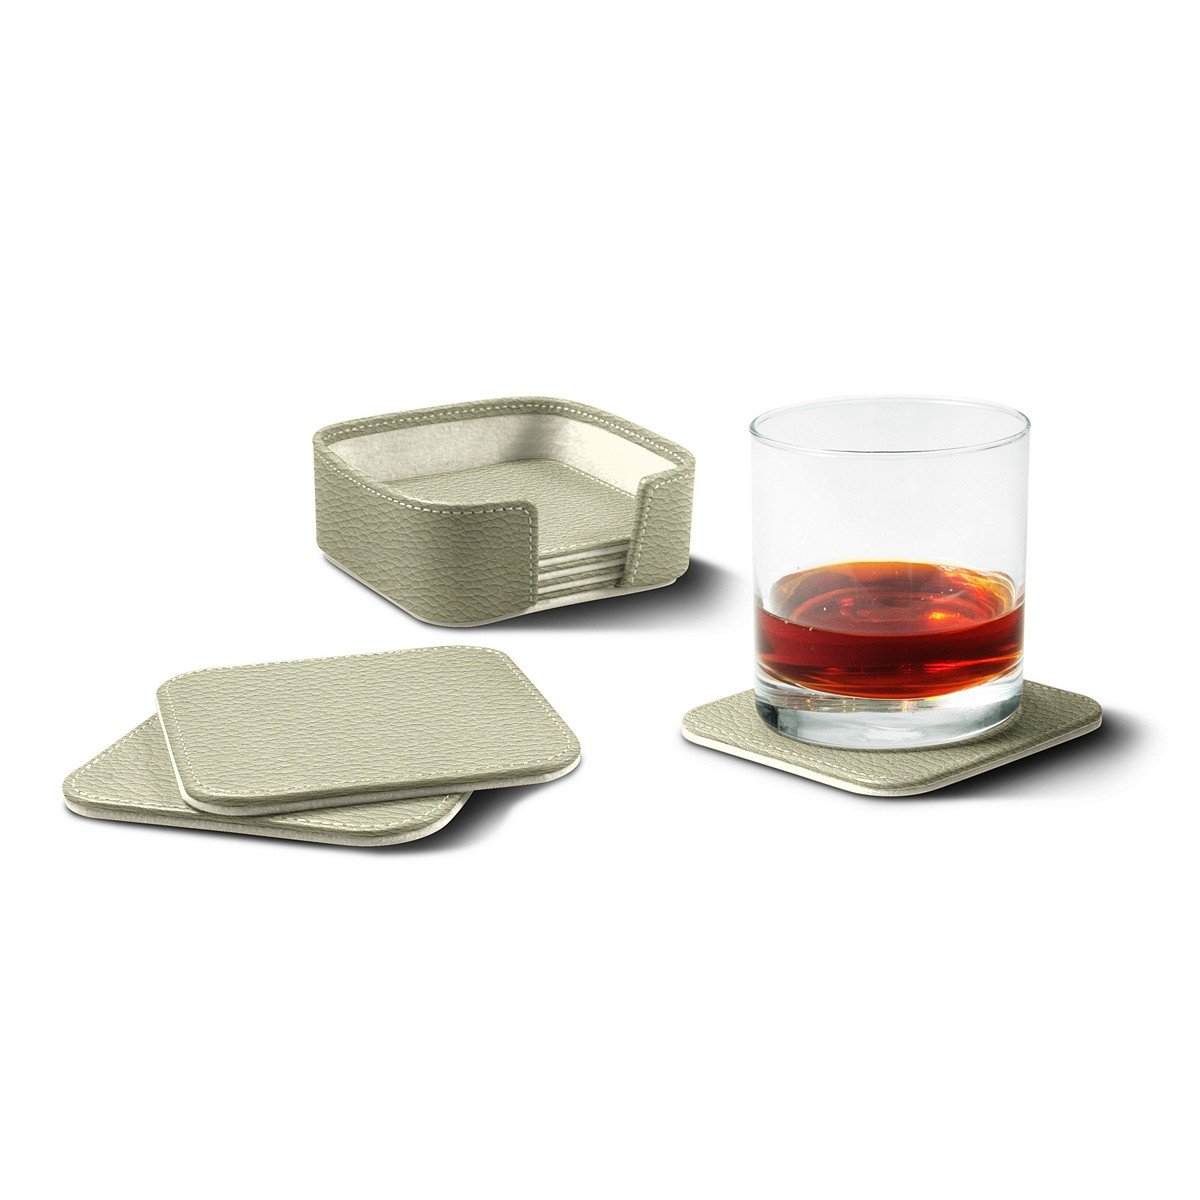 Lucrin - Set of 6 Square Genuine Leather Coasters with Coaster Holder -White - Granulated Leather